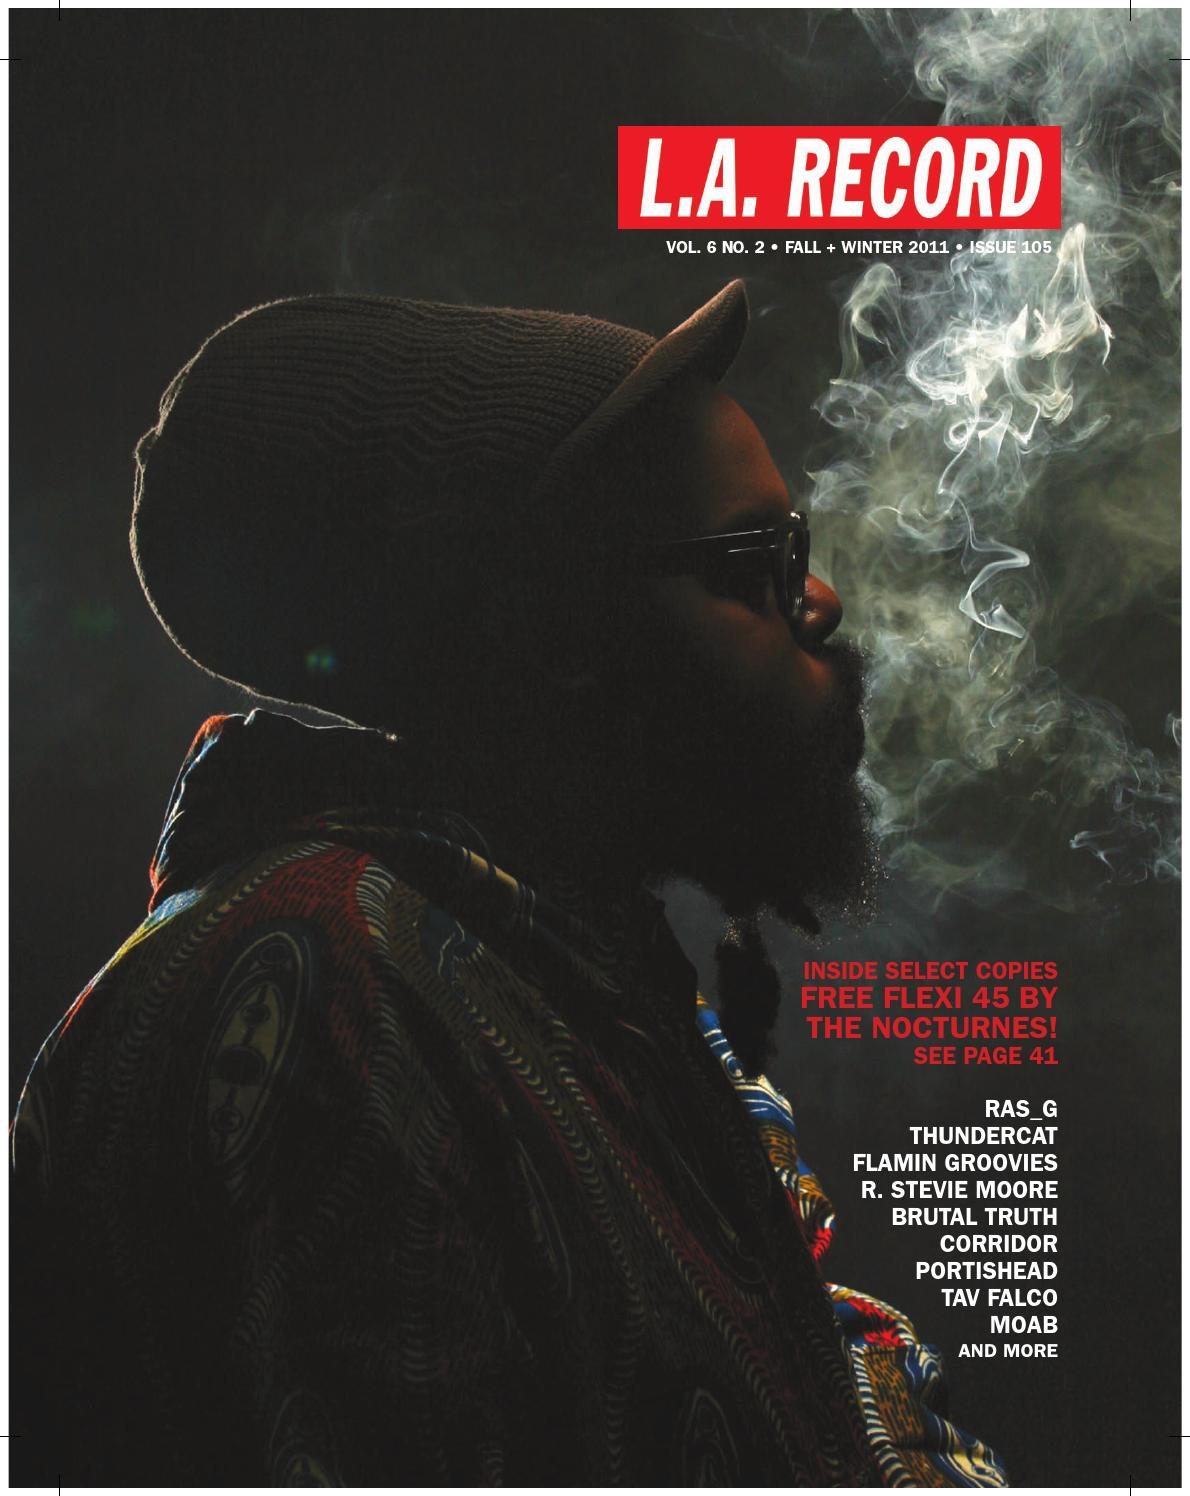 LA RECORD ISSUE 105 by L.A. RECORD - issuu 3528046d2